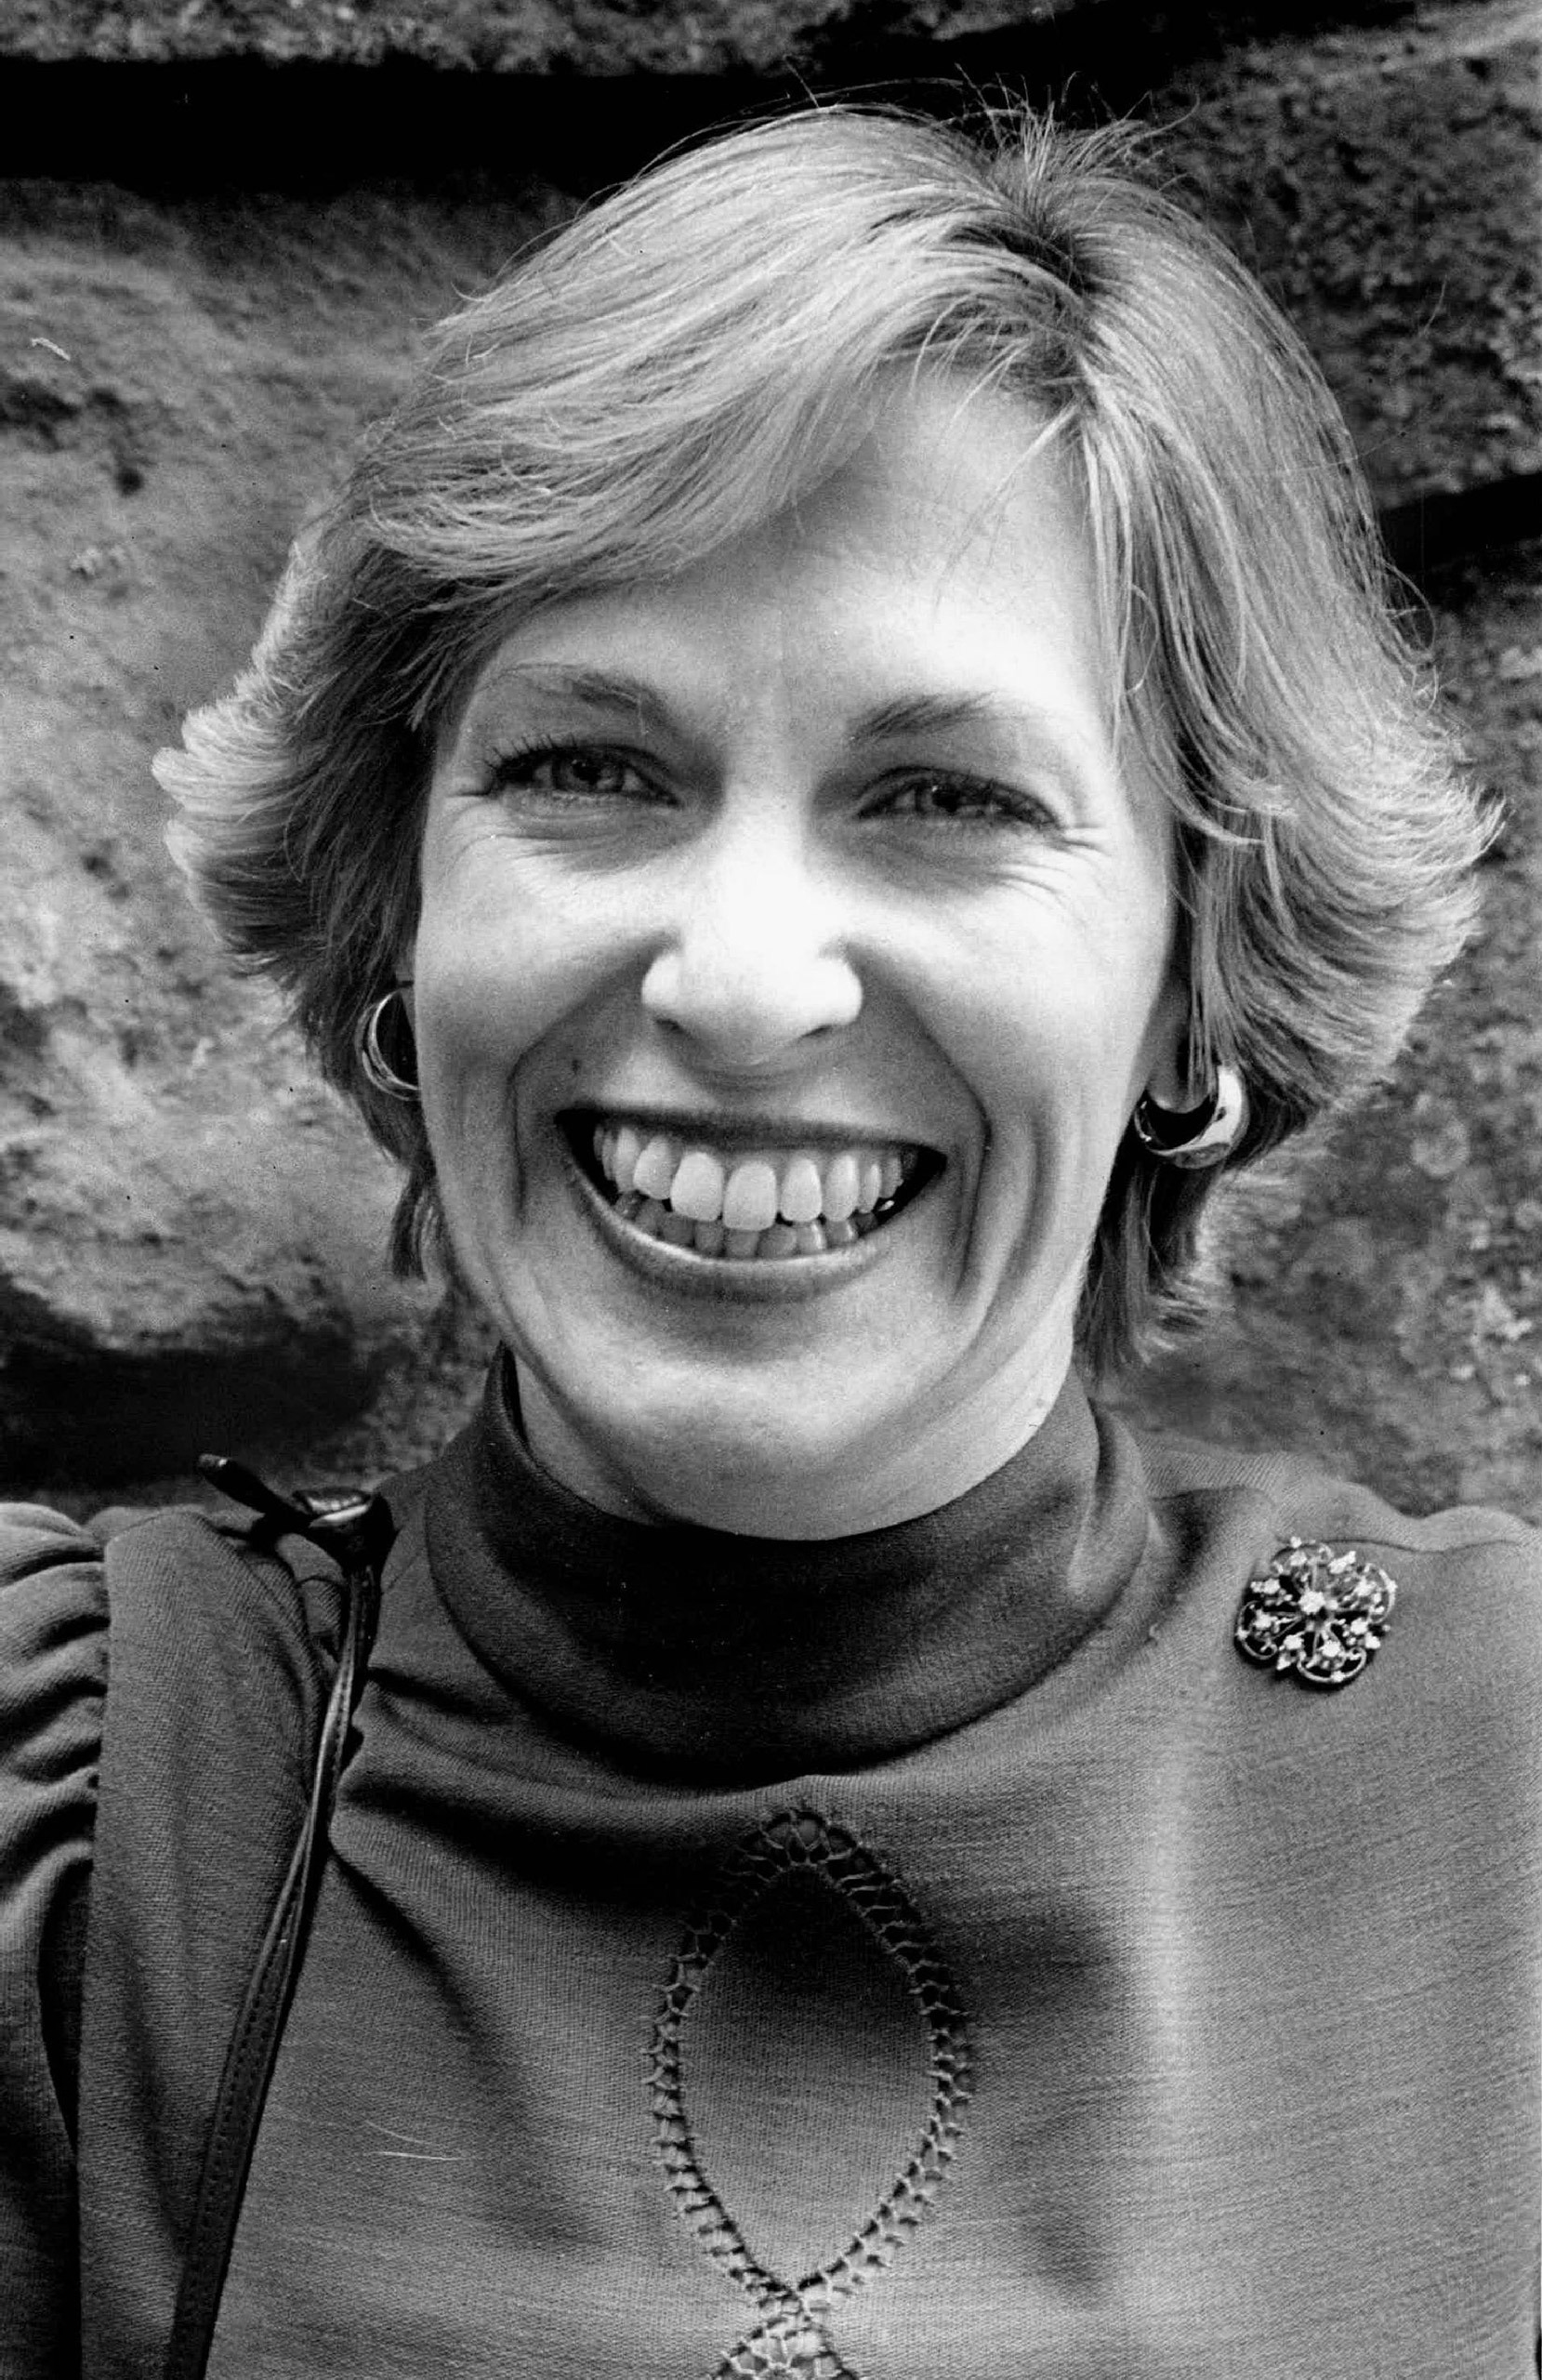 MAR 27 1978, APR 5 1978; Consumer Product Safety Commissioner Barbara Franklin; Women are realizing